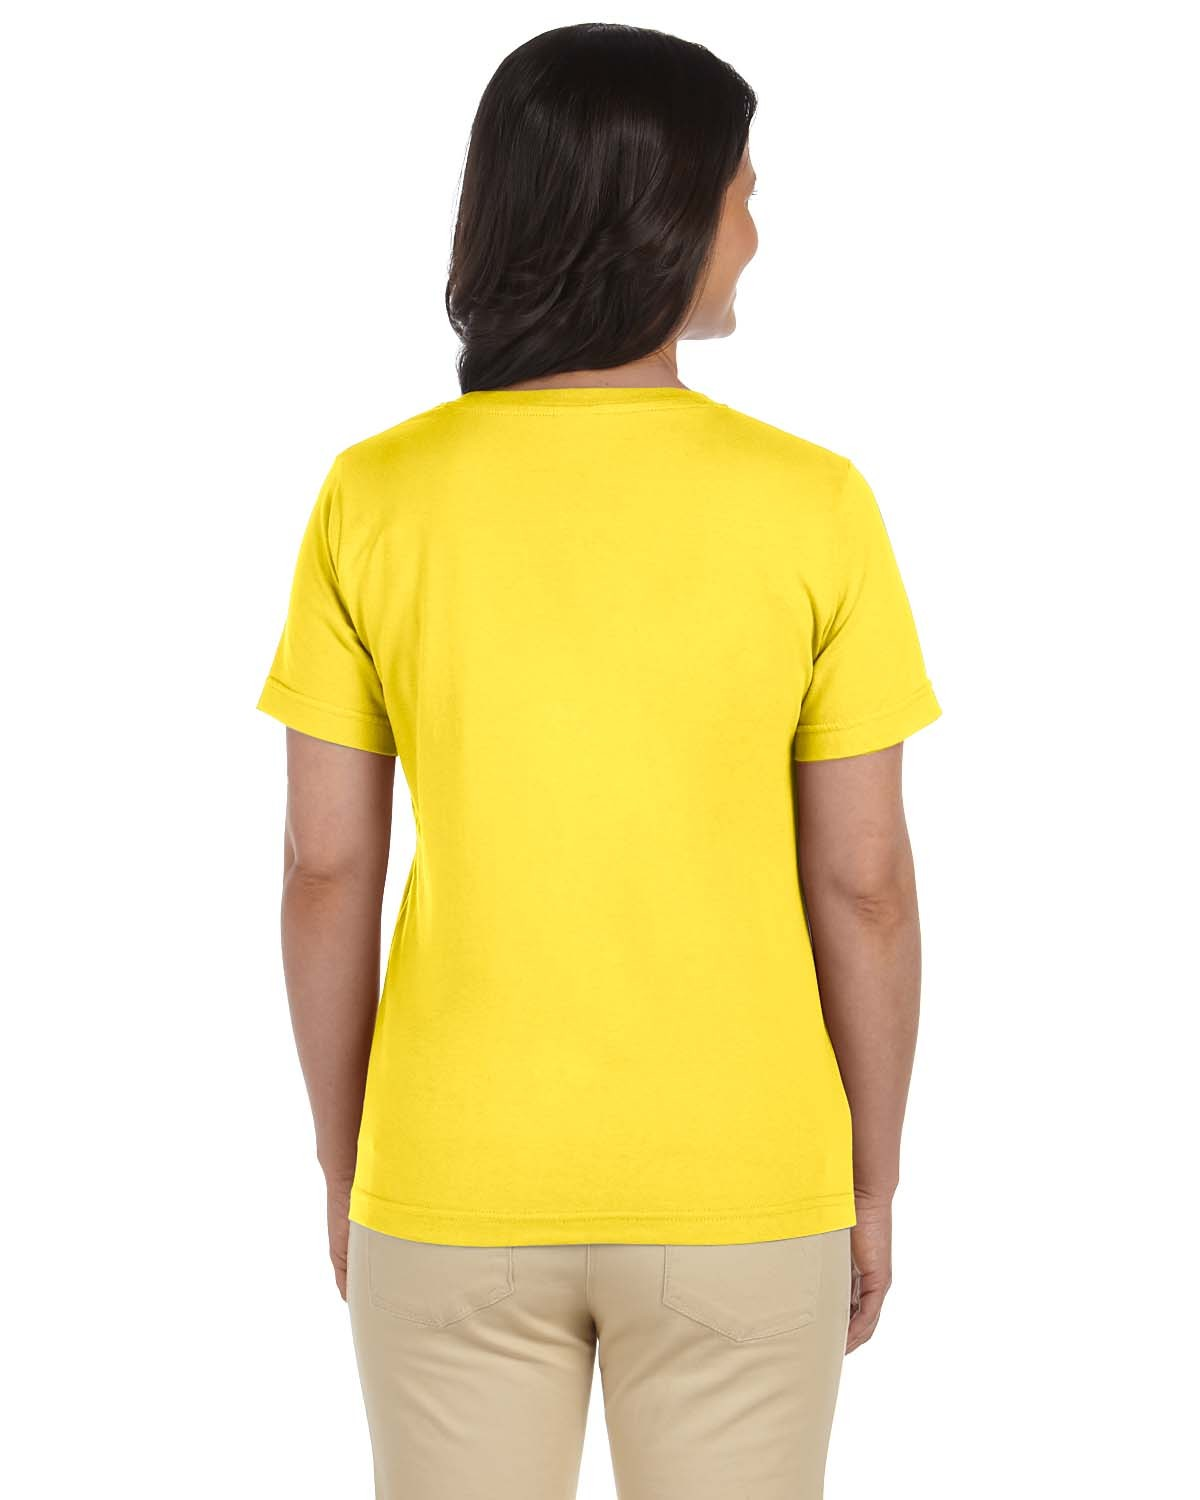 L-3587 LAT YELLOW